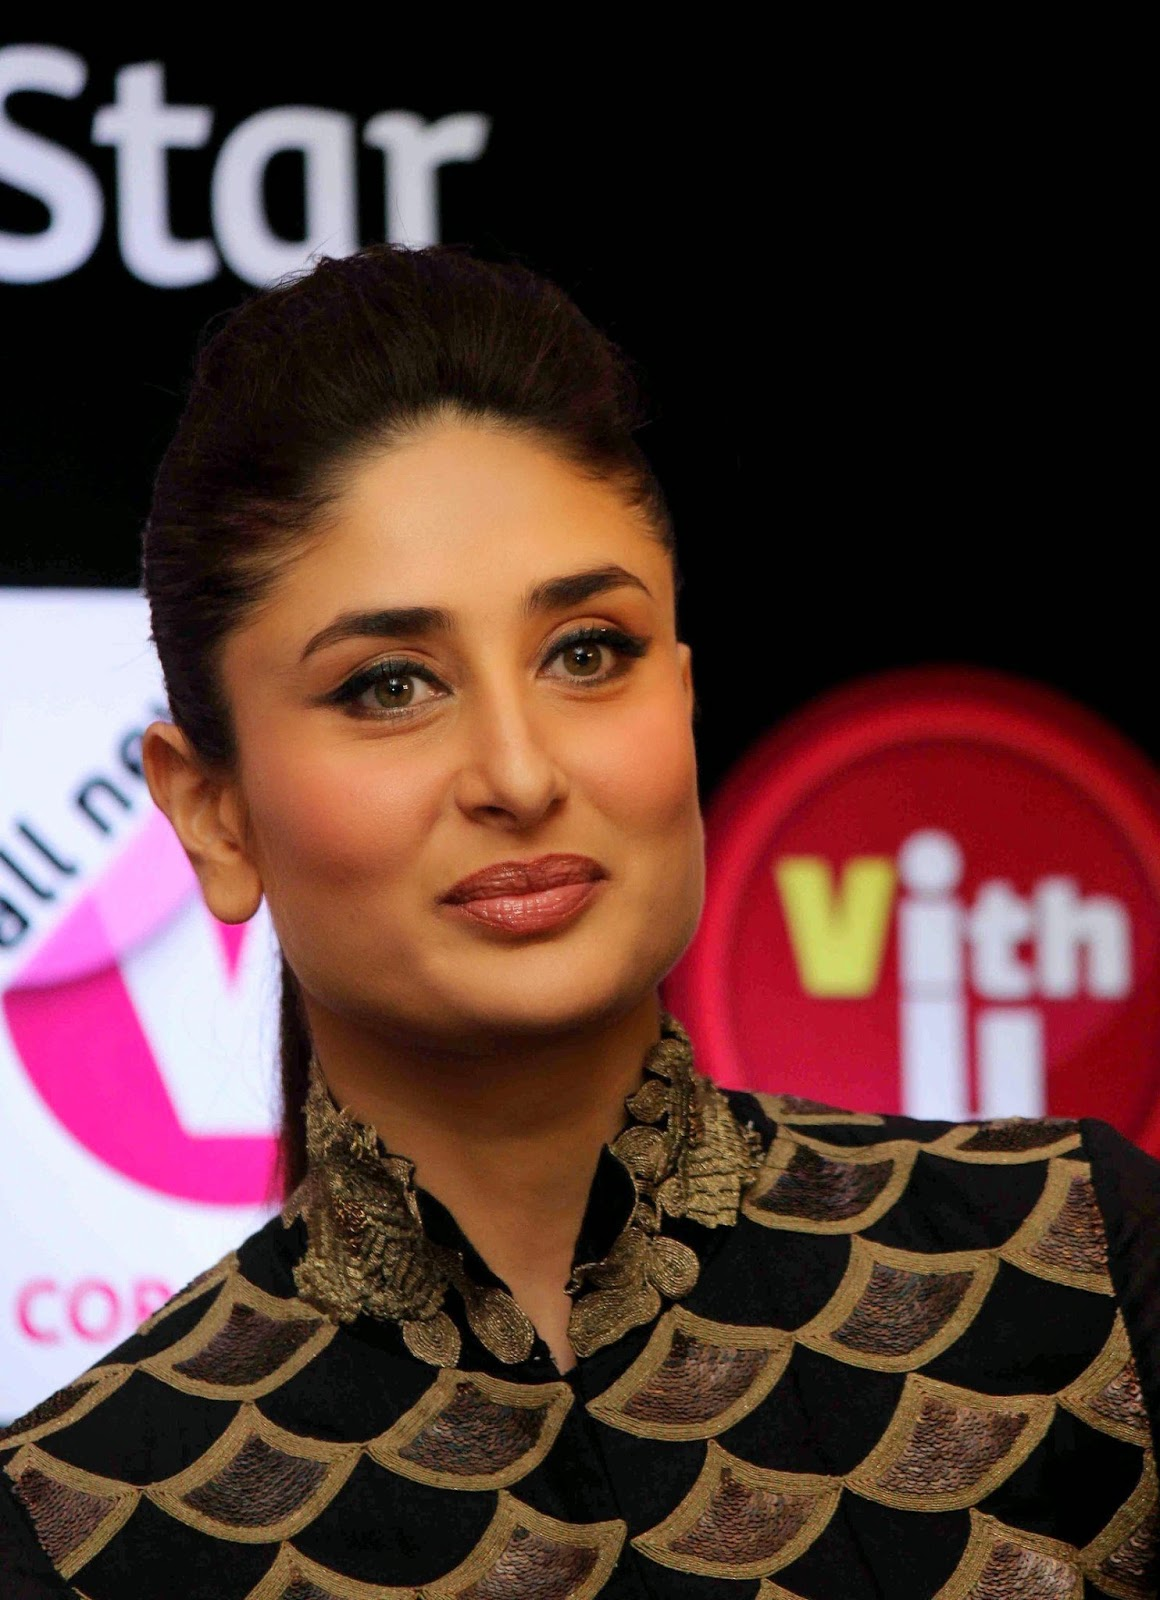 High Quality Bollywood Celebrity Pictures Kareena Kapoor -3260